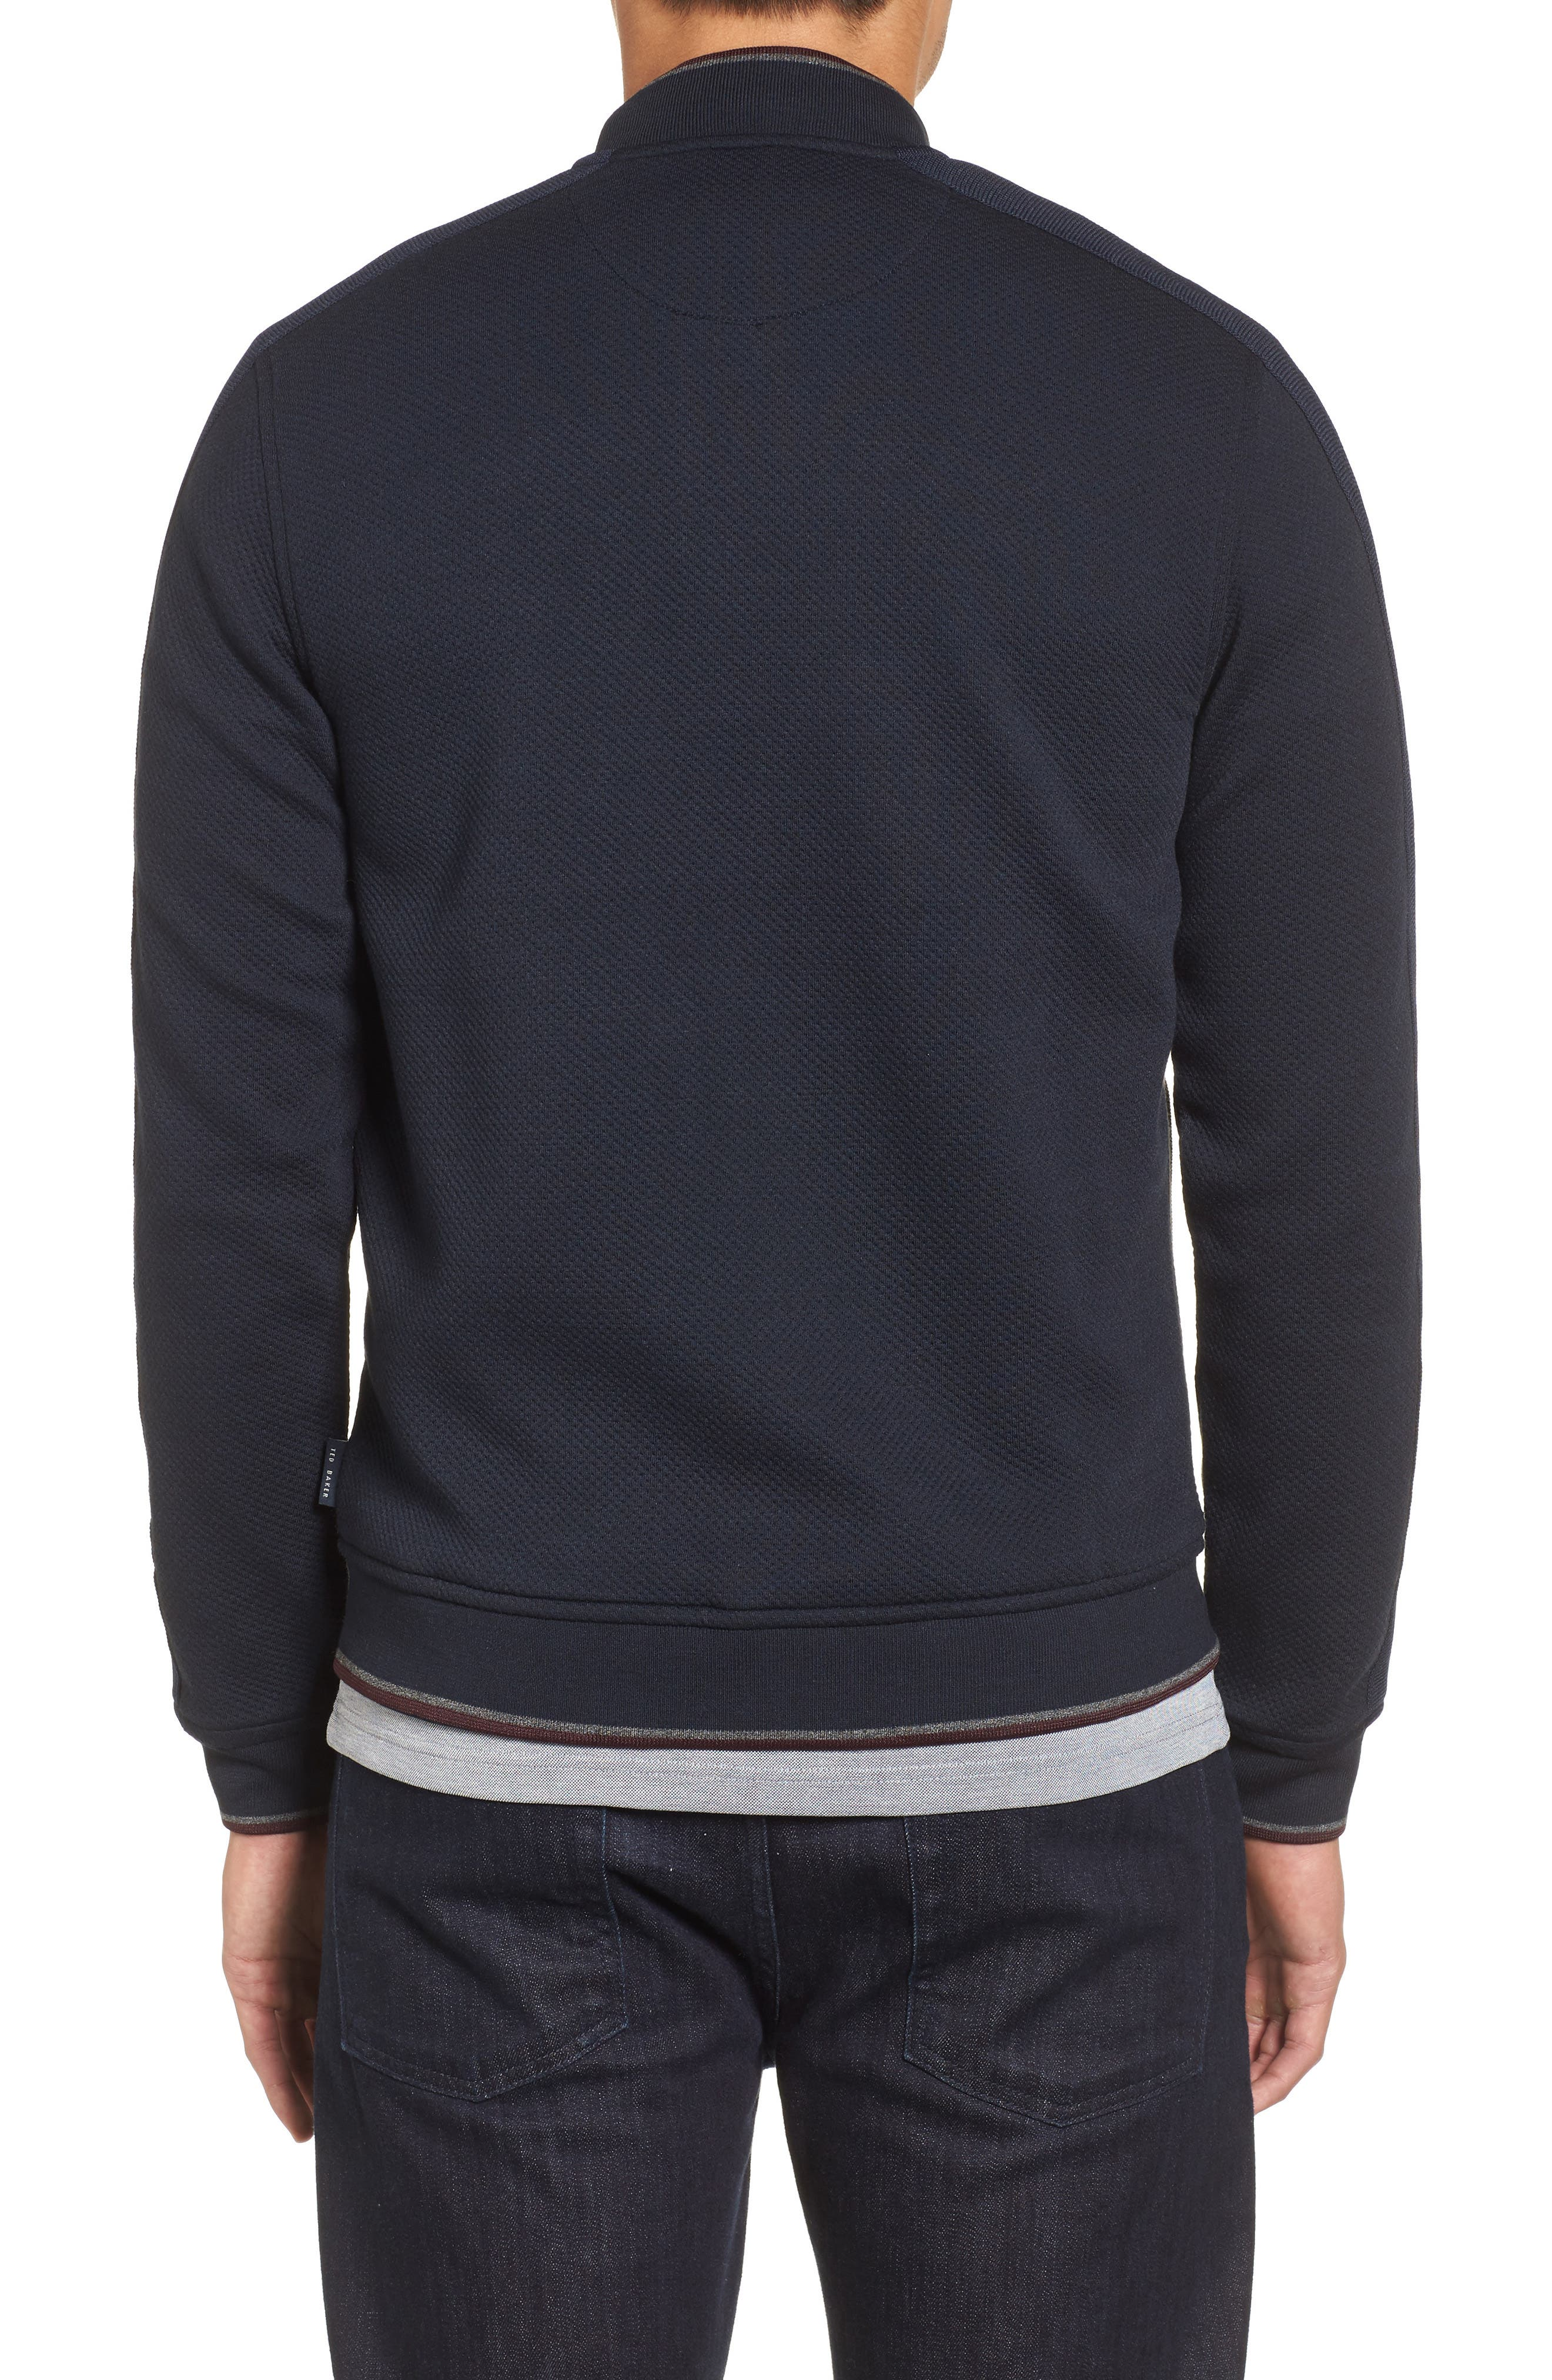 Whatts Trim Fit Textured Bomber Jacket,                             Alternate thumbnail 2, color,                             Navy